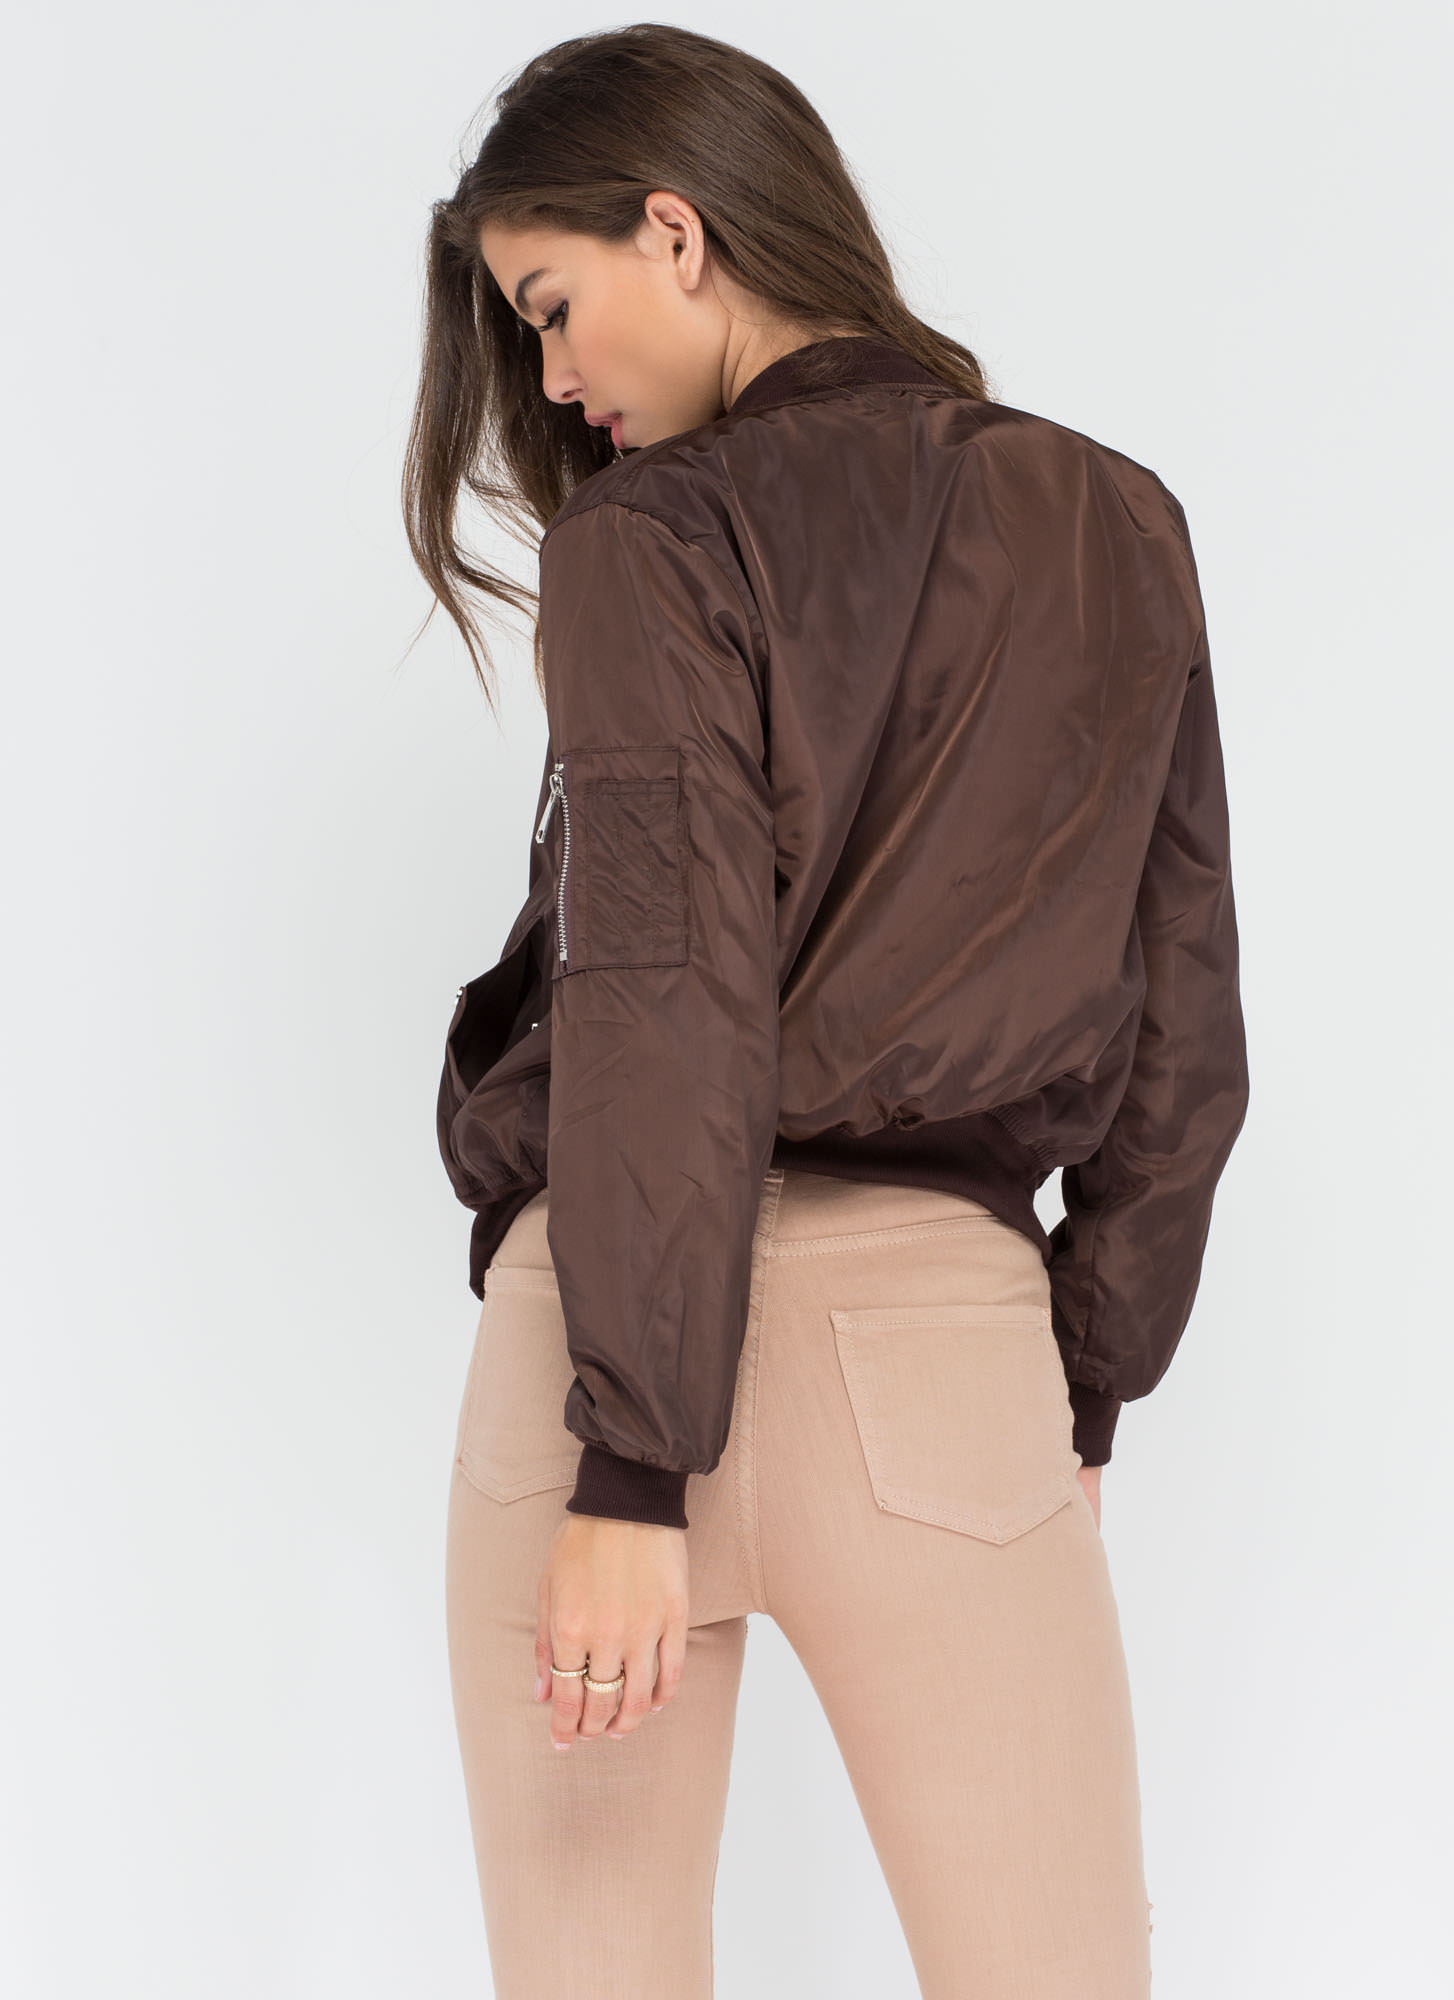 Top It Off Bomber Windbreaker Jacket BROWN